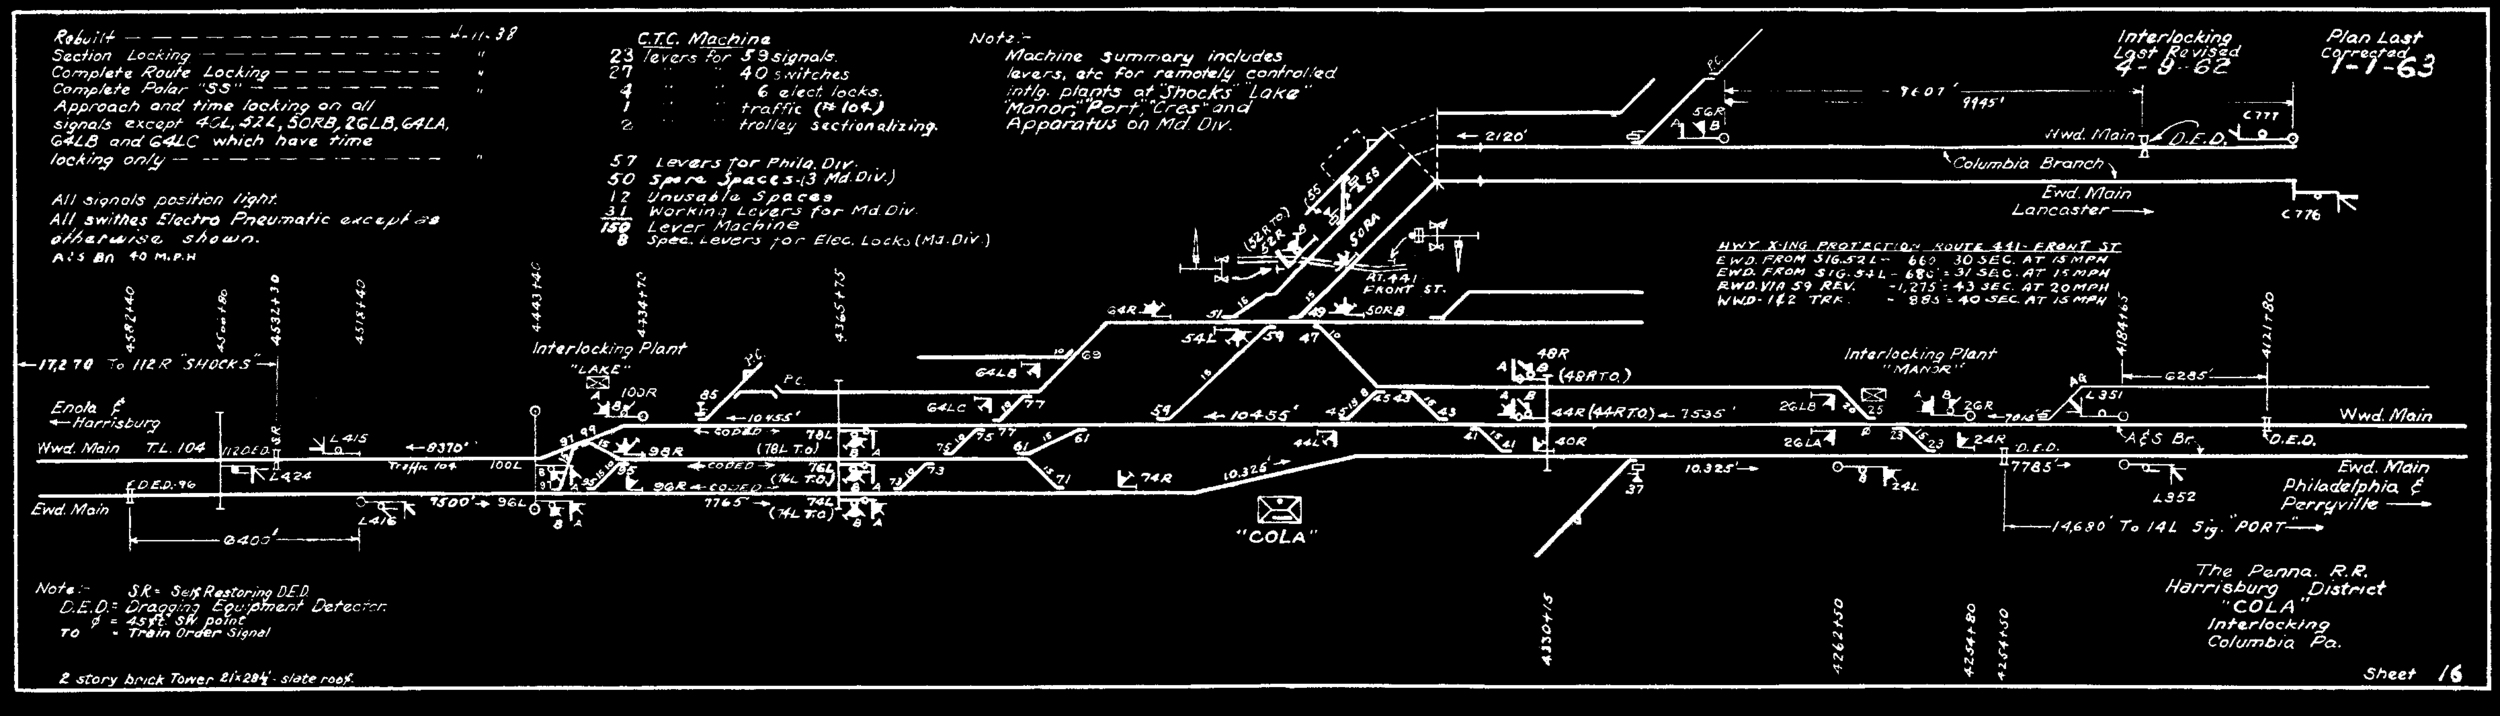 Plate drawing circa1963 Cola Interlocking which controlled the junction of the York Haven line, Columbia branch and Columbia and Port Deposit as well as access to the local freight yard. This interlocking was part of a Centralized Traffic Control system that controlled a much larger district of trackage and interlockings. Collection of    The Broad Way   .